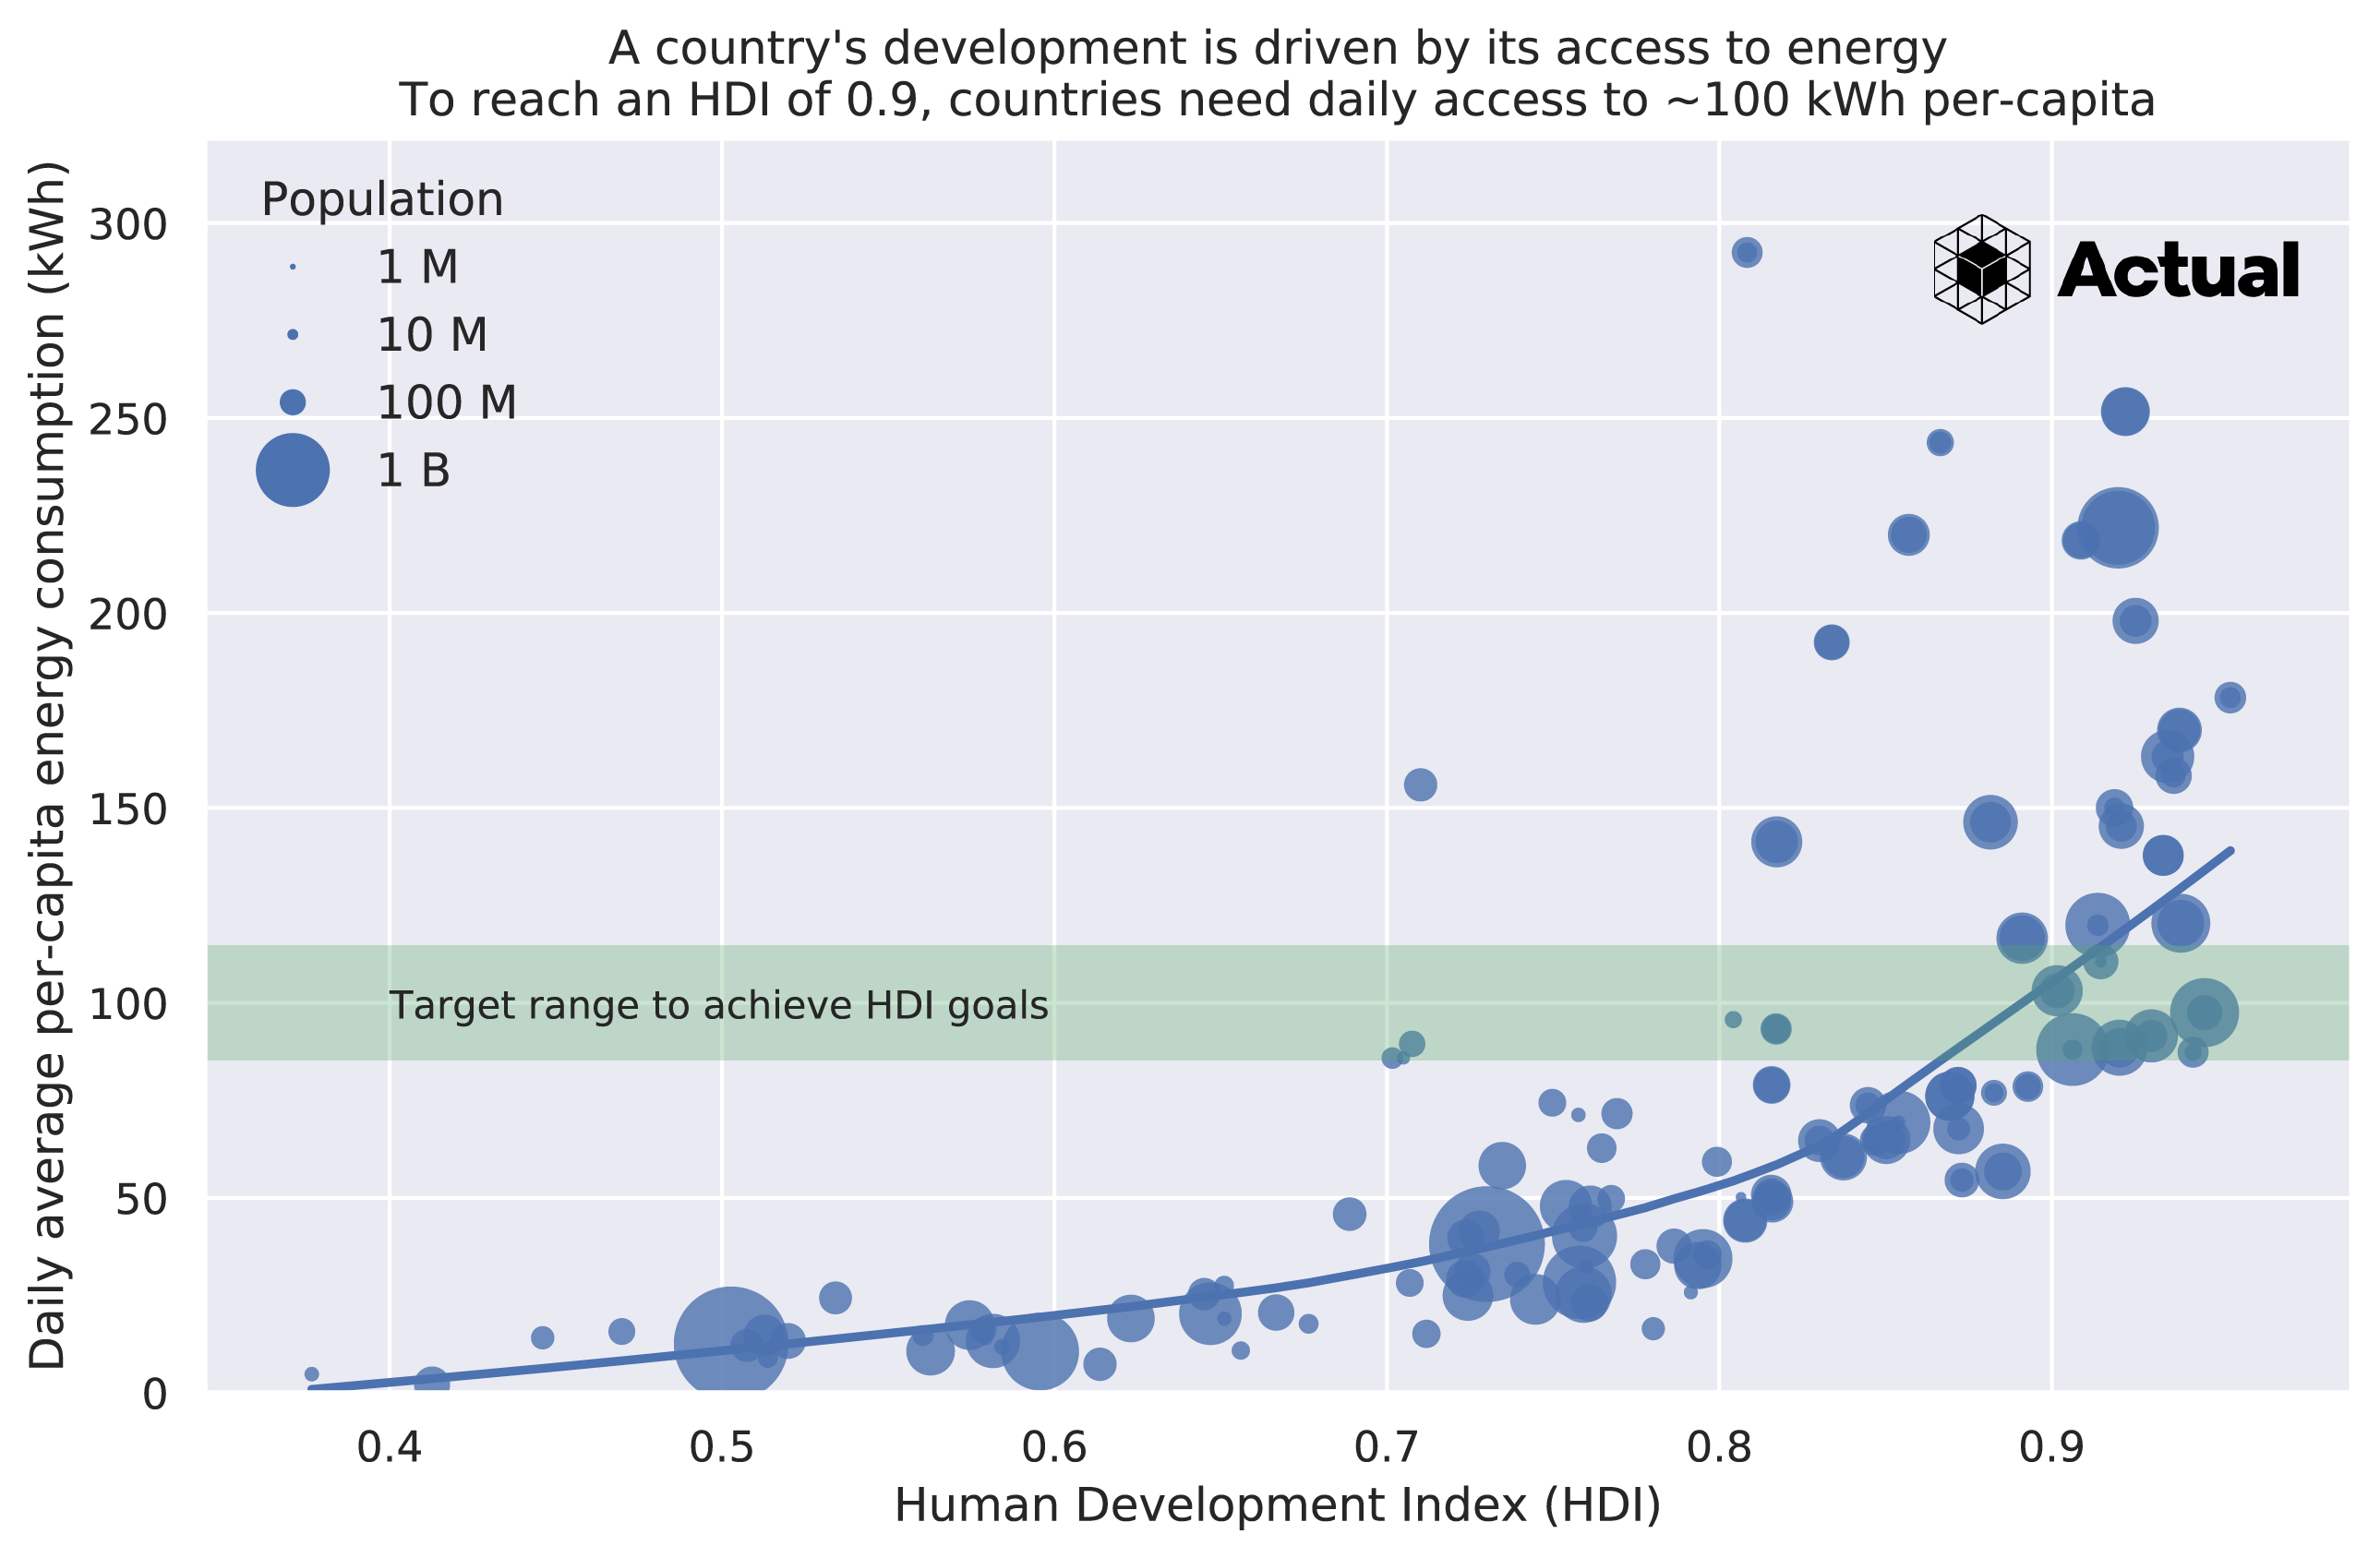 A chart showing the per-capita energy consumption as a function of the Human Development Index. This chart shows that as the available per-capita energy increases, the HDI of a country also increases. Essentially, a high level of development requires at least 100 kWh/day per capita.